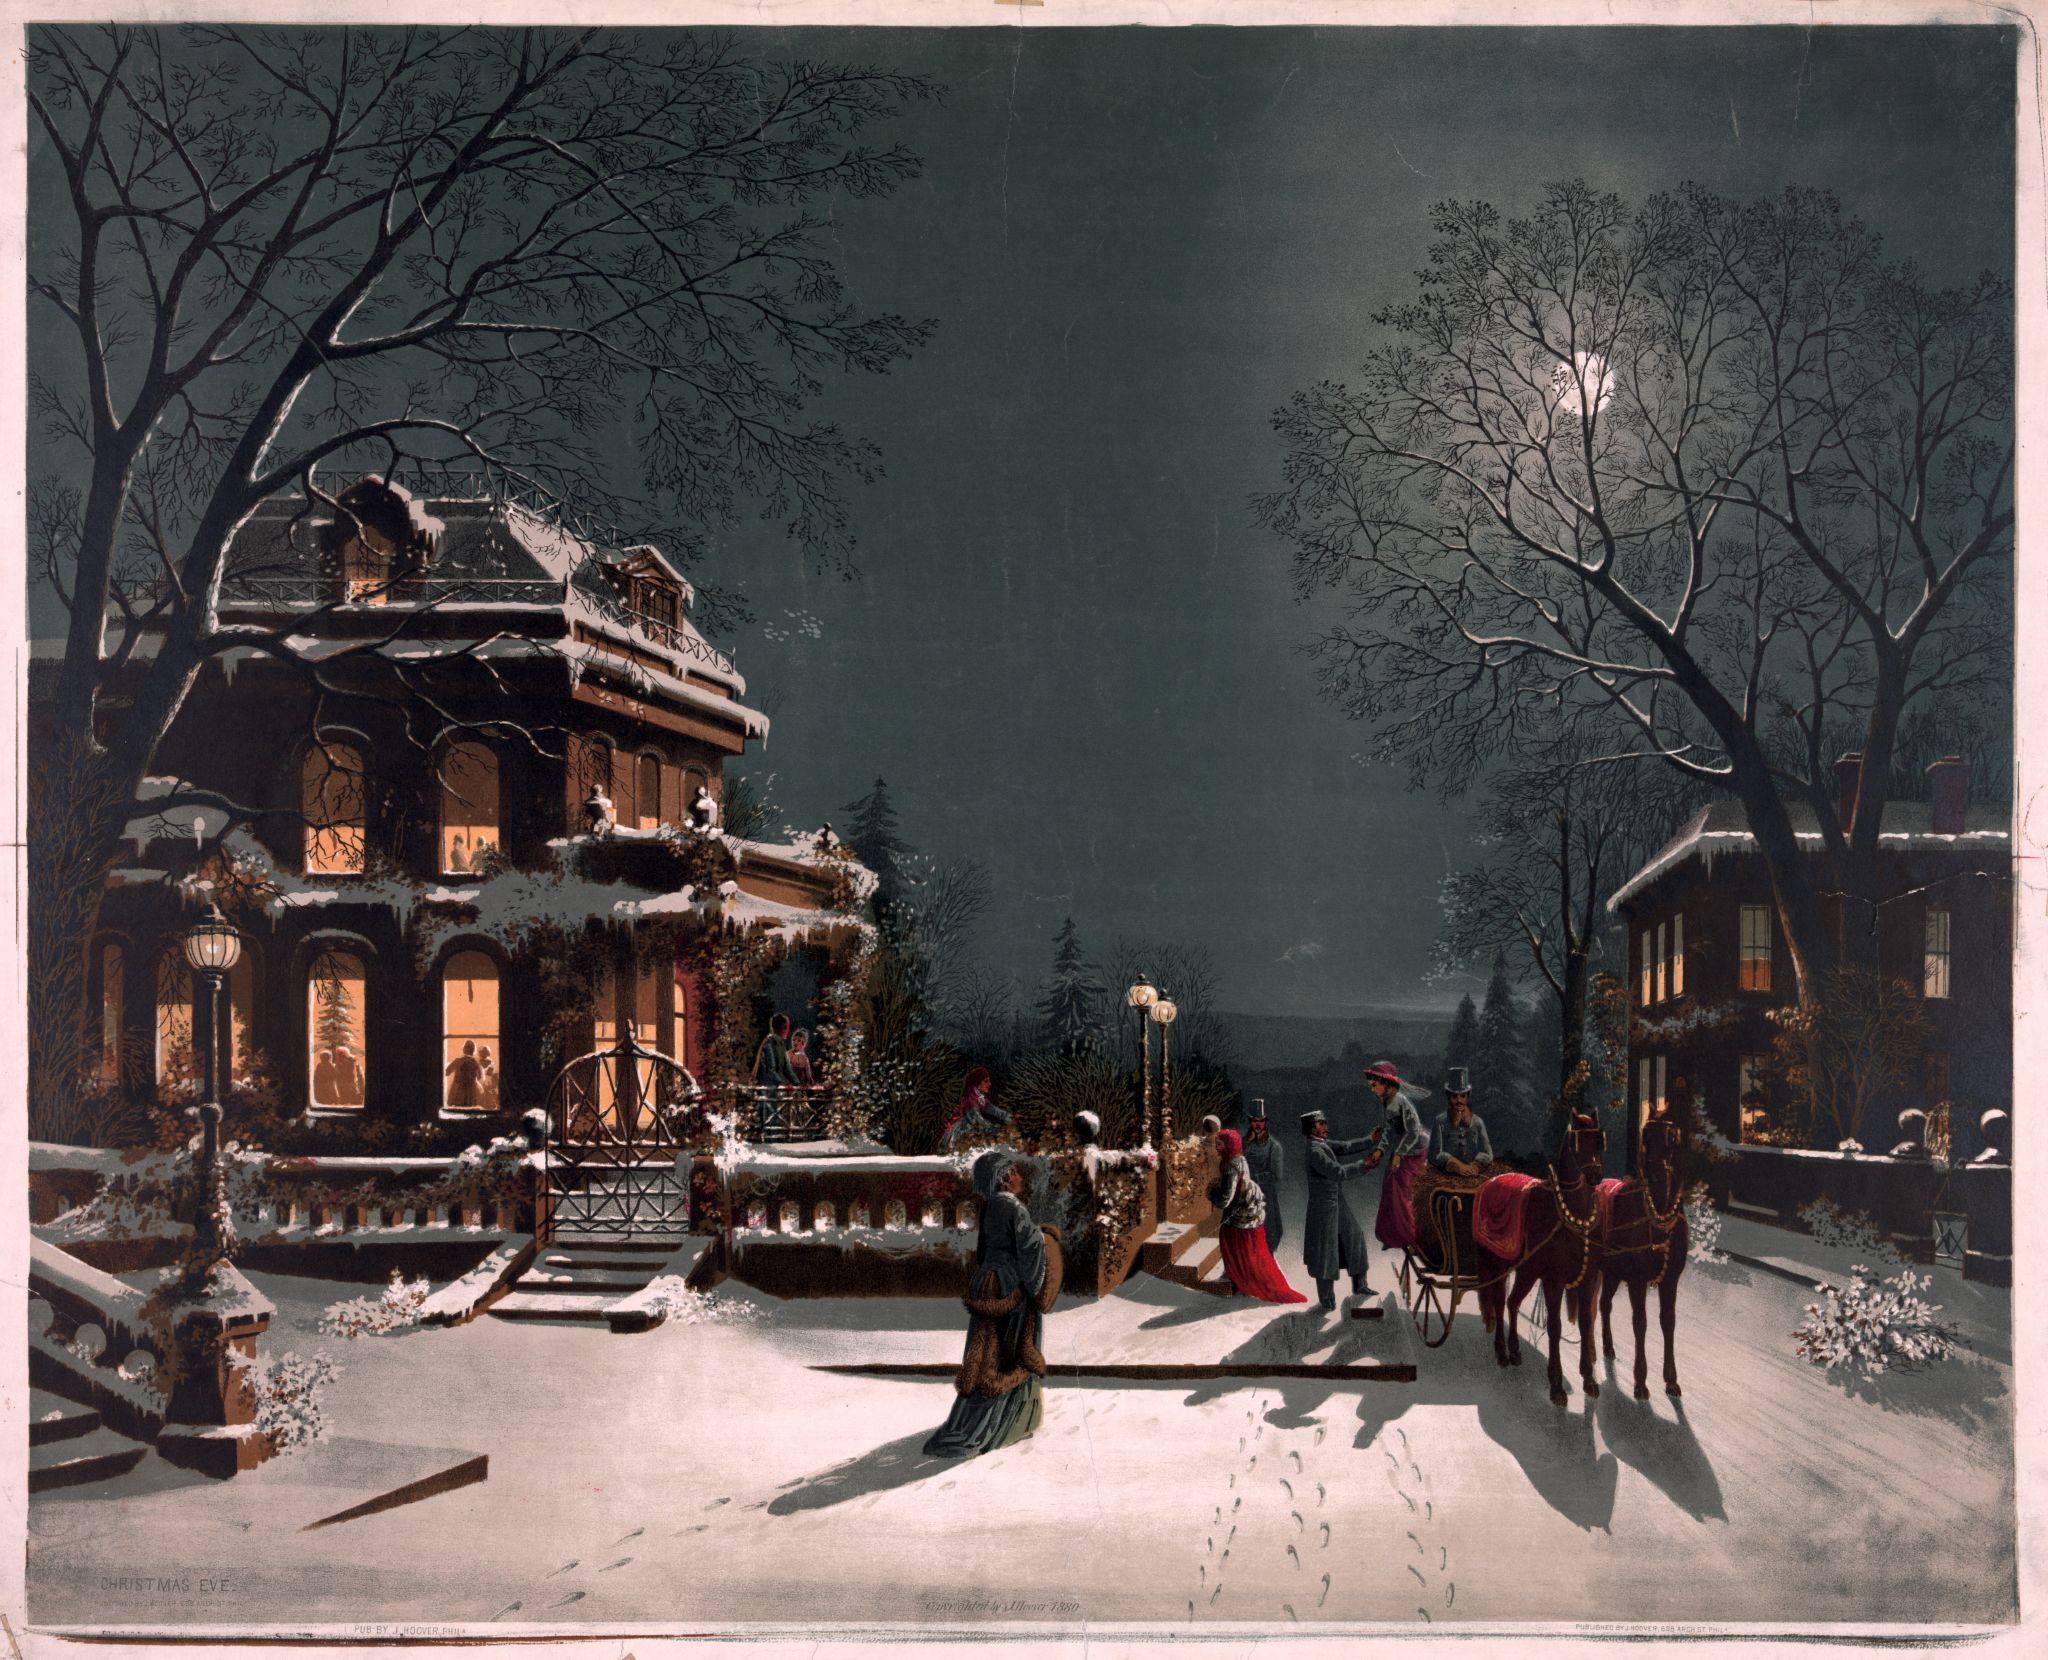 Christmas Eve published by Joseph C. Hoover & Sons, Philadelphia, Pennsylvania. Christmas card printed by chromolithography, 1880. From the collection of the Library of Congress.